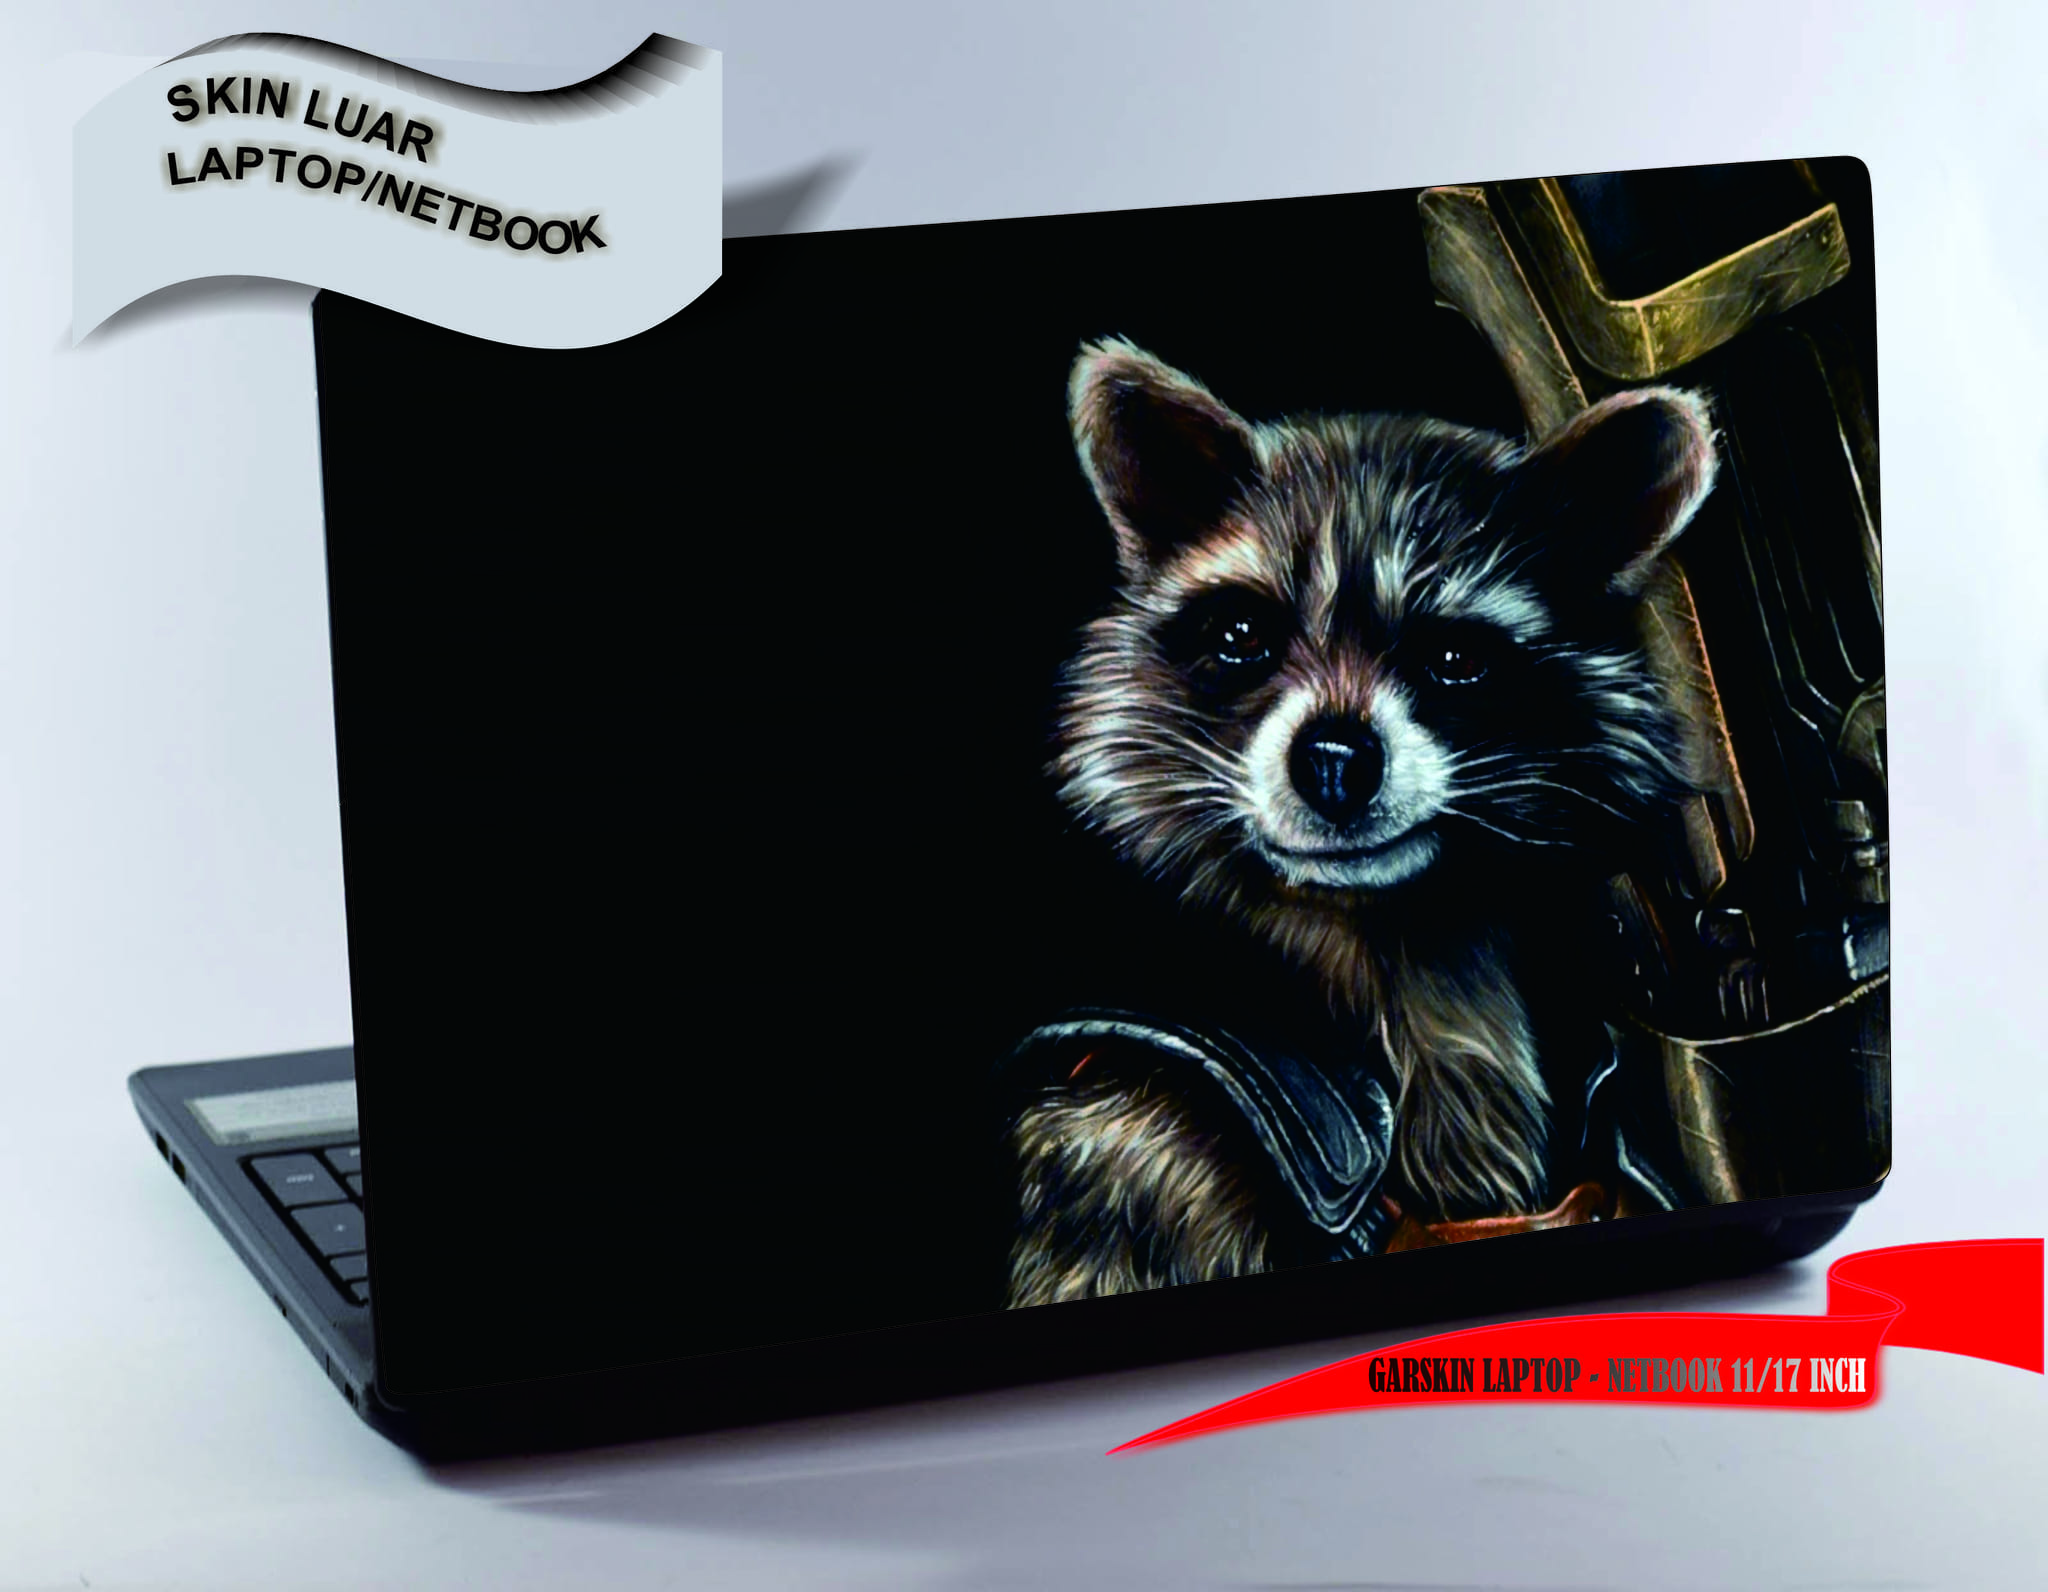 Garskin luar Laptop/Netbook - Guardians galaxy